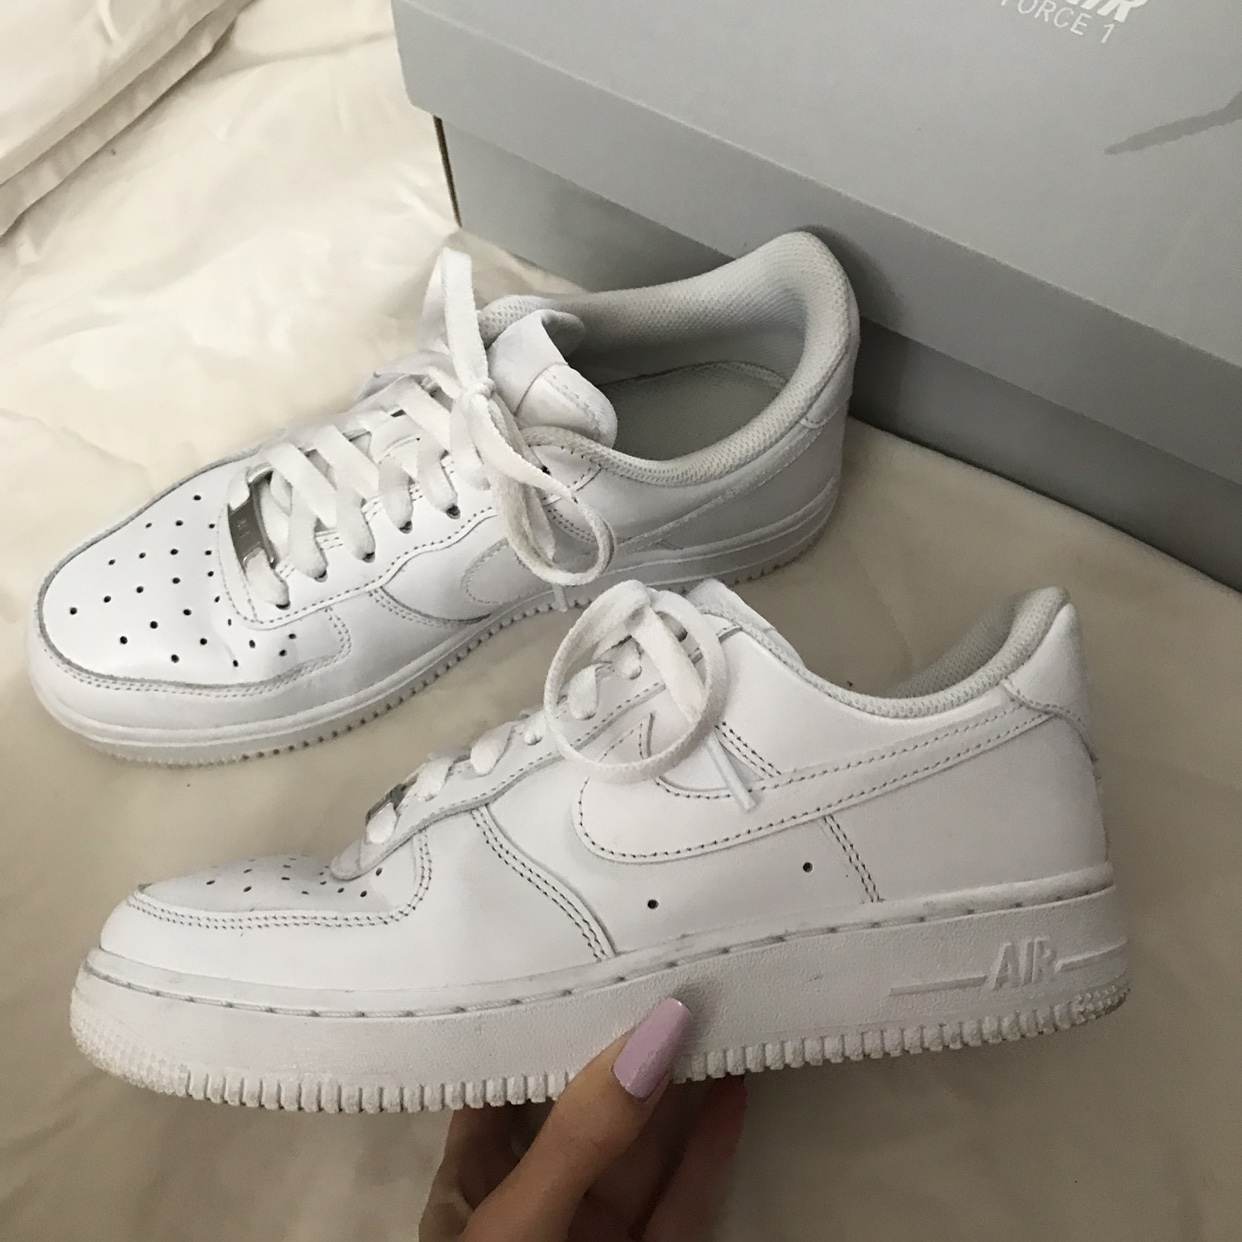 Nike Air Force 1 low white • size uk 4